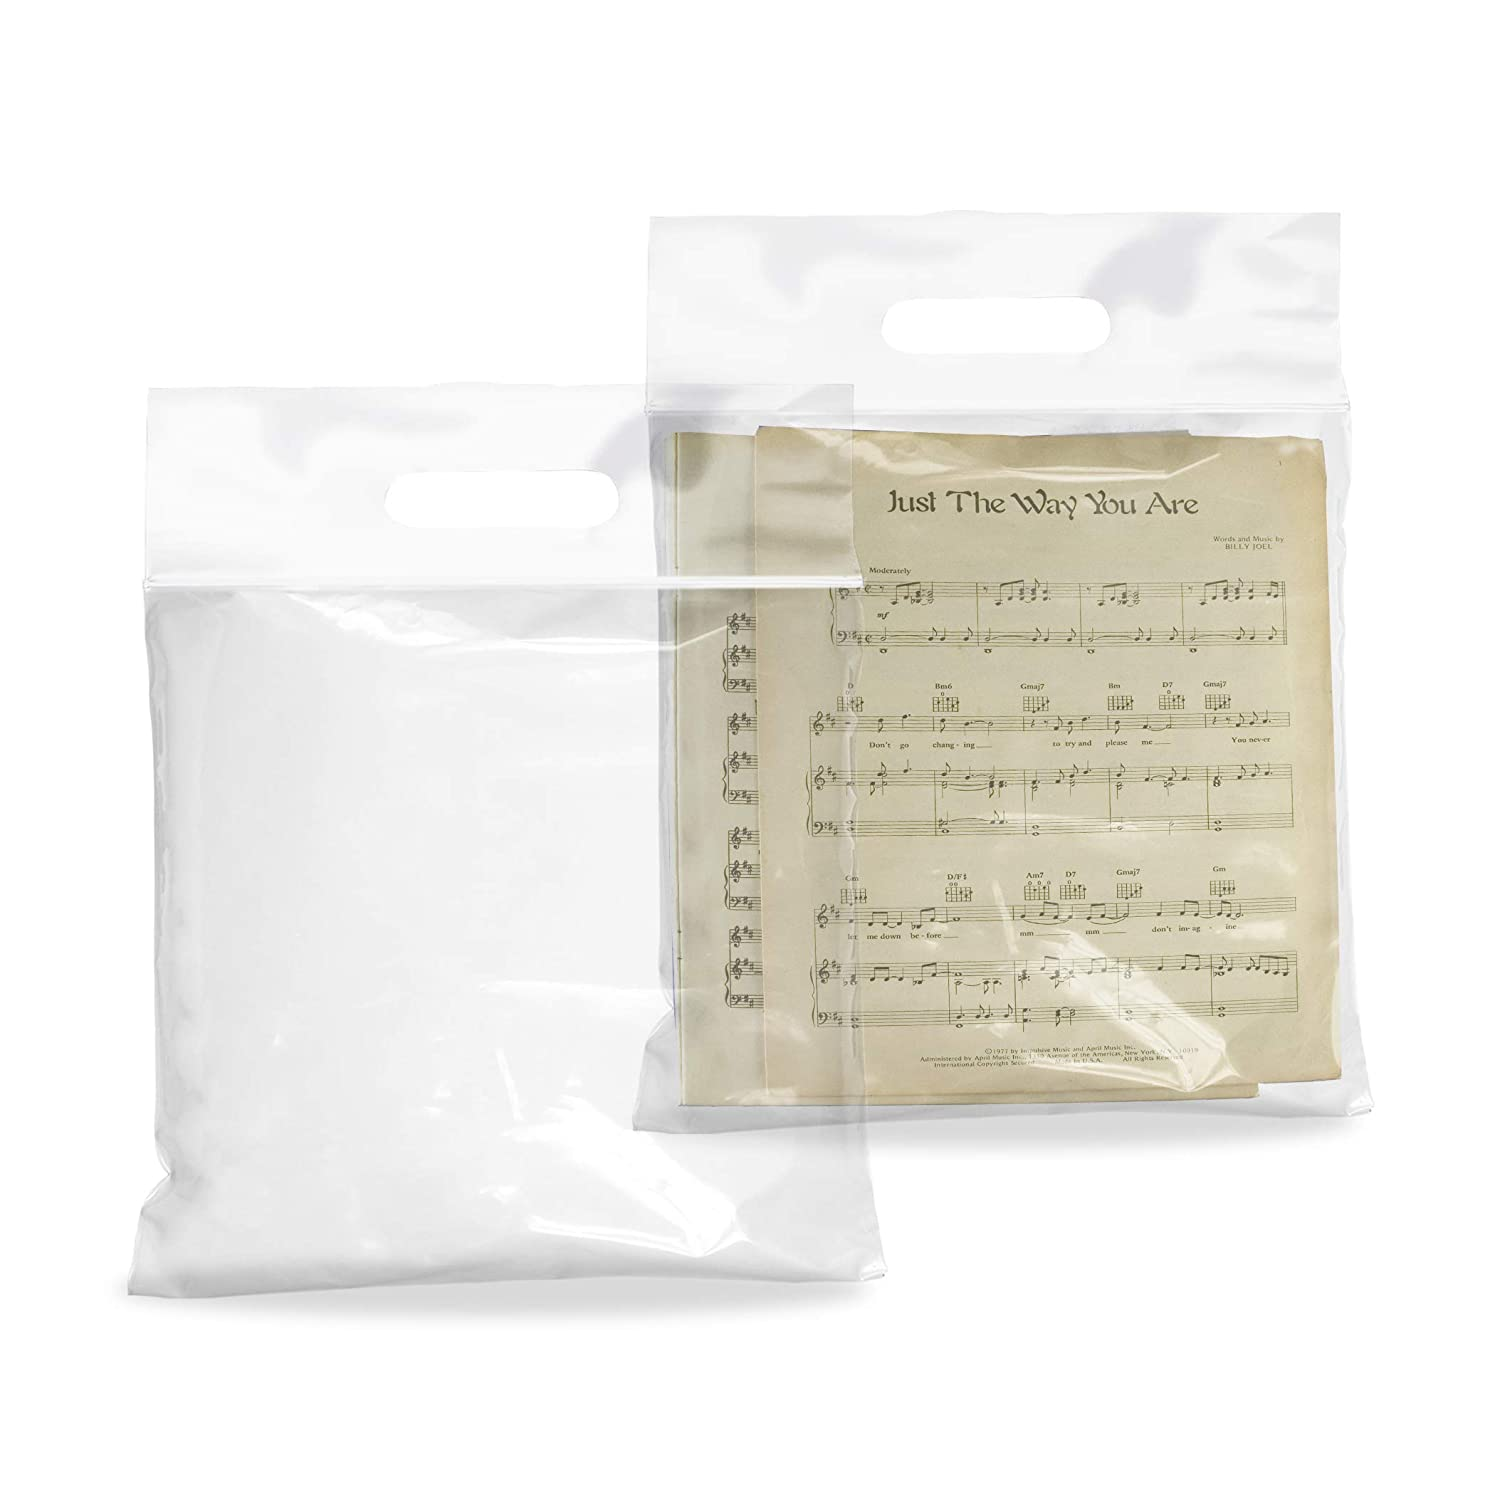 APQ 100 Pack Die Cut Zip Lock Bags 9 x 9.5 Thickness 3 Mil, 3 Inch Lip. Clear Poly Handle Bags 9x9.5. Polyethylene Industrial Bags for Food Service.